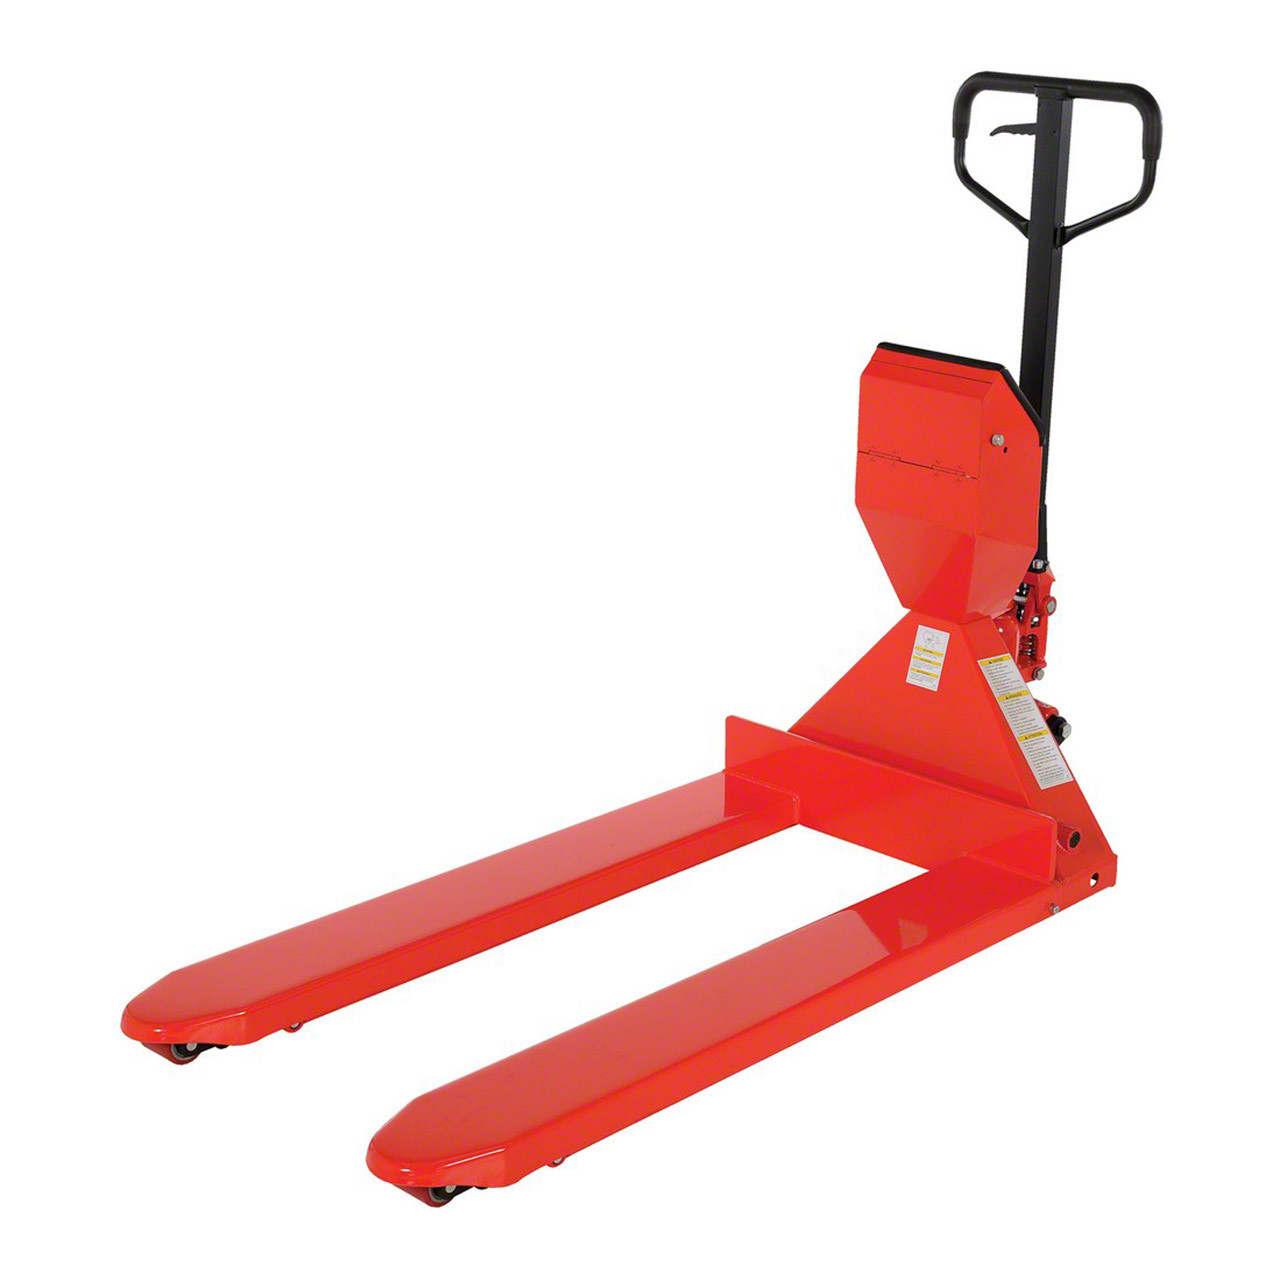 Our 2-in-1 combination pallet jack and scale takes the guess work out of load weight